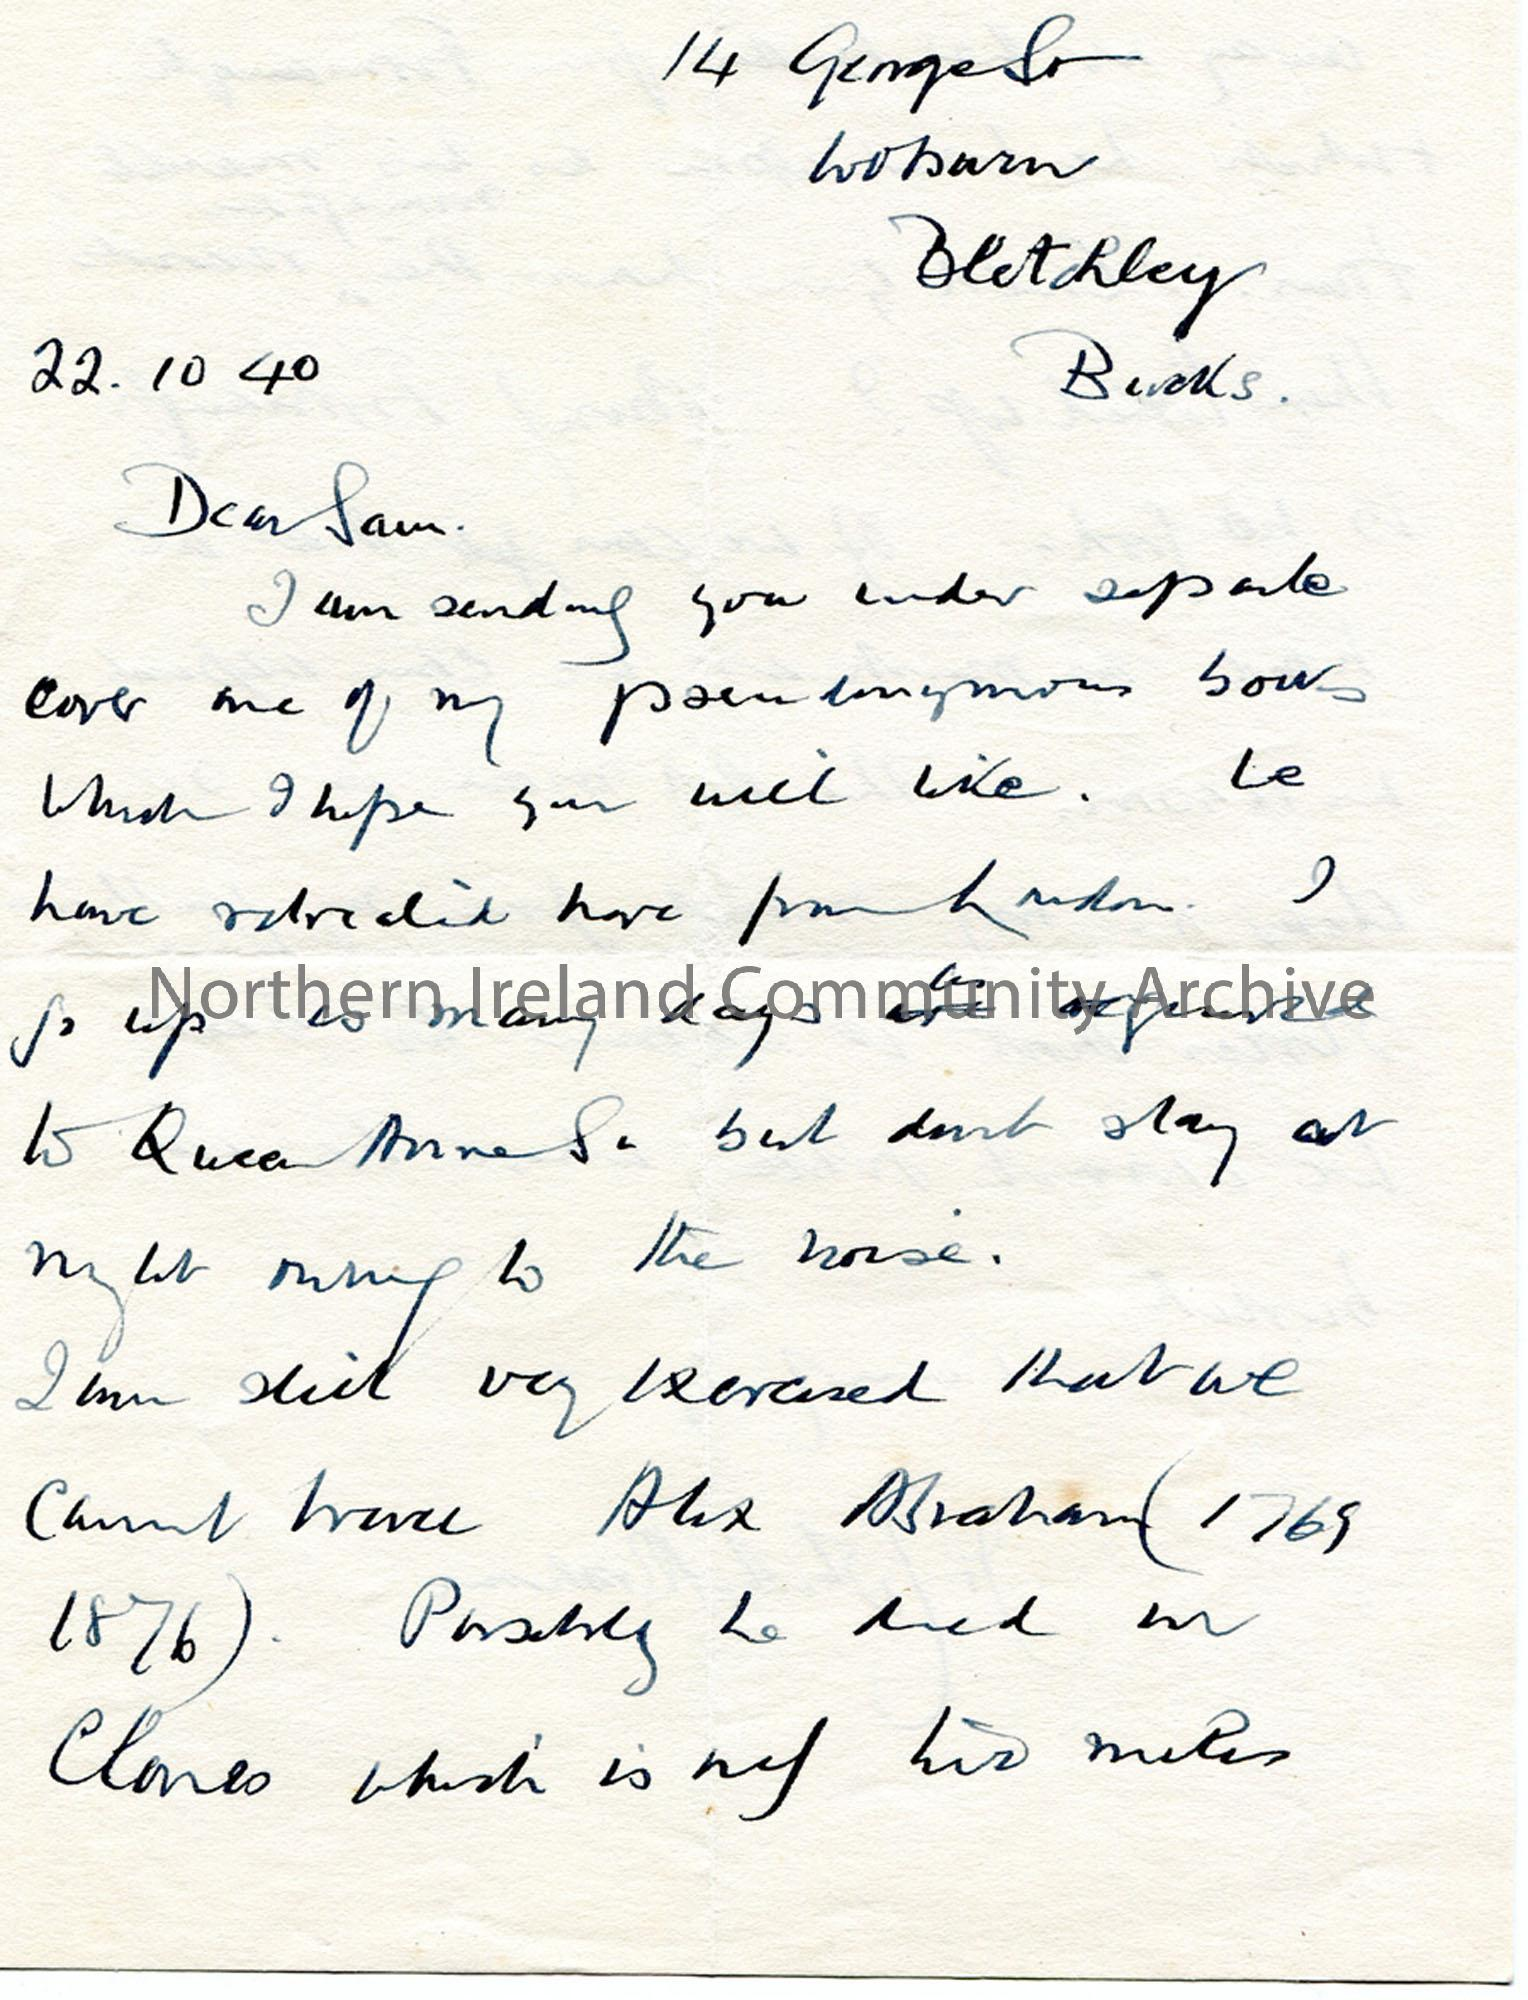 Letter from James Johnston Abraham 22.10.1940 (1)